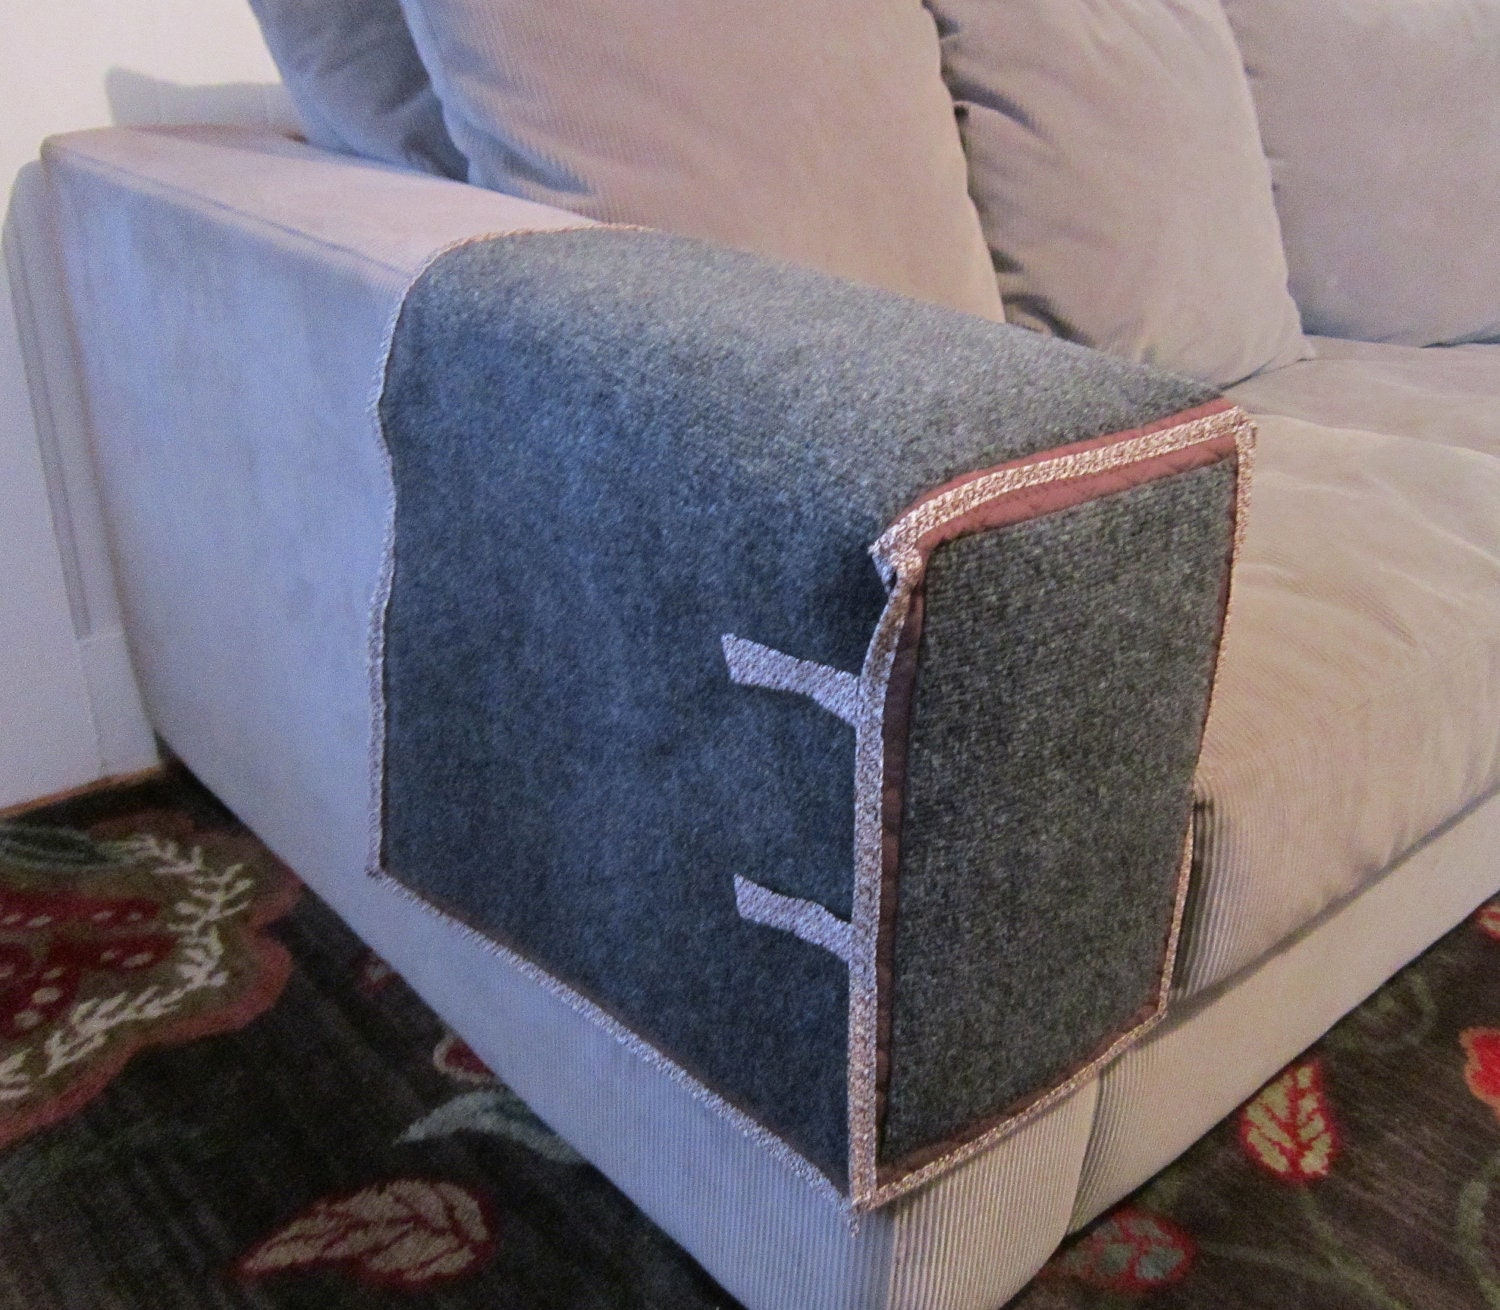 Cat Scratching Couch or Chair Arm Protection